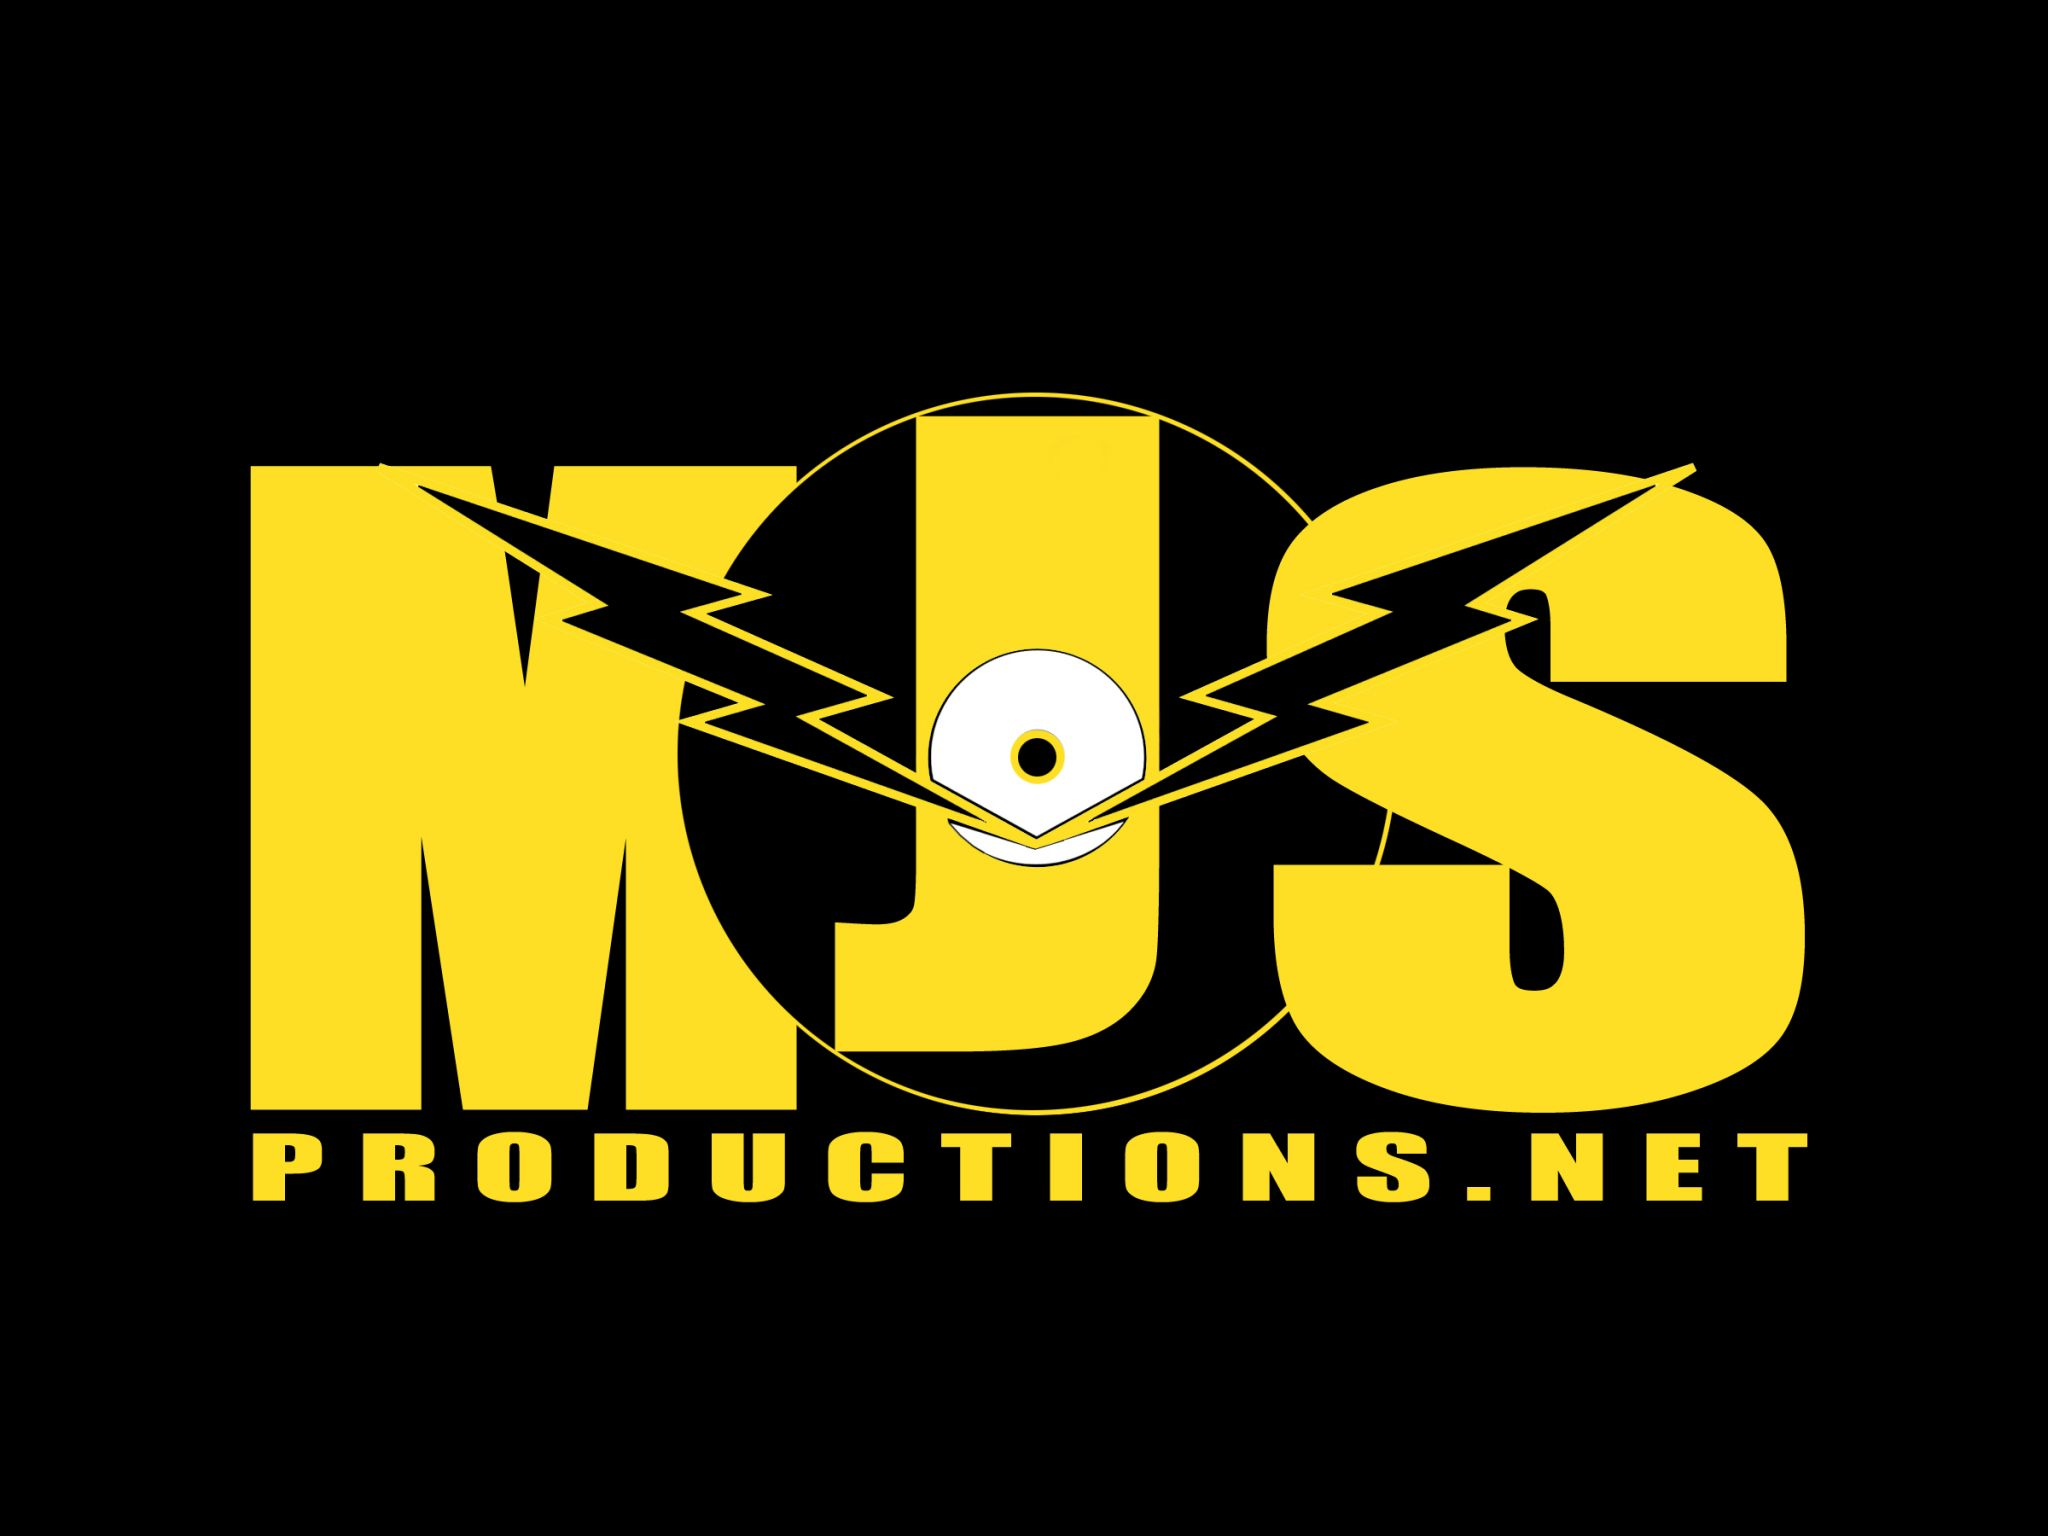 http://mjsproductions.net/Coppermine/albums/userpics/10001/MJS_Productions_Logo_Big